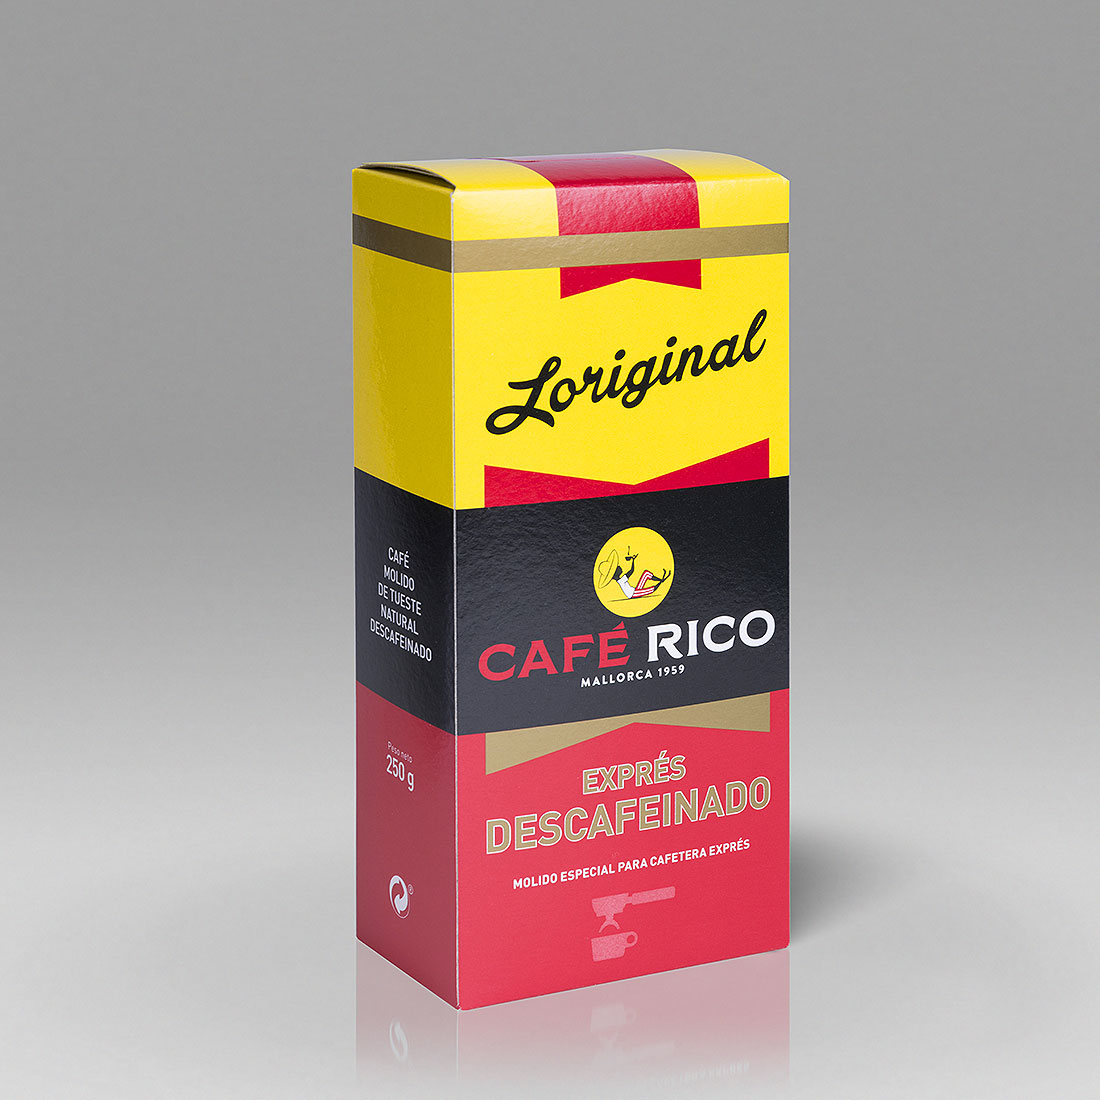 Cafe-Rico-Original-Expres-Descafeinat